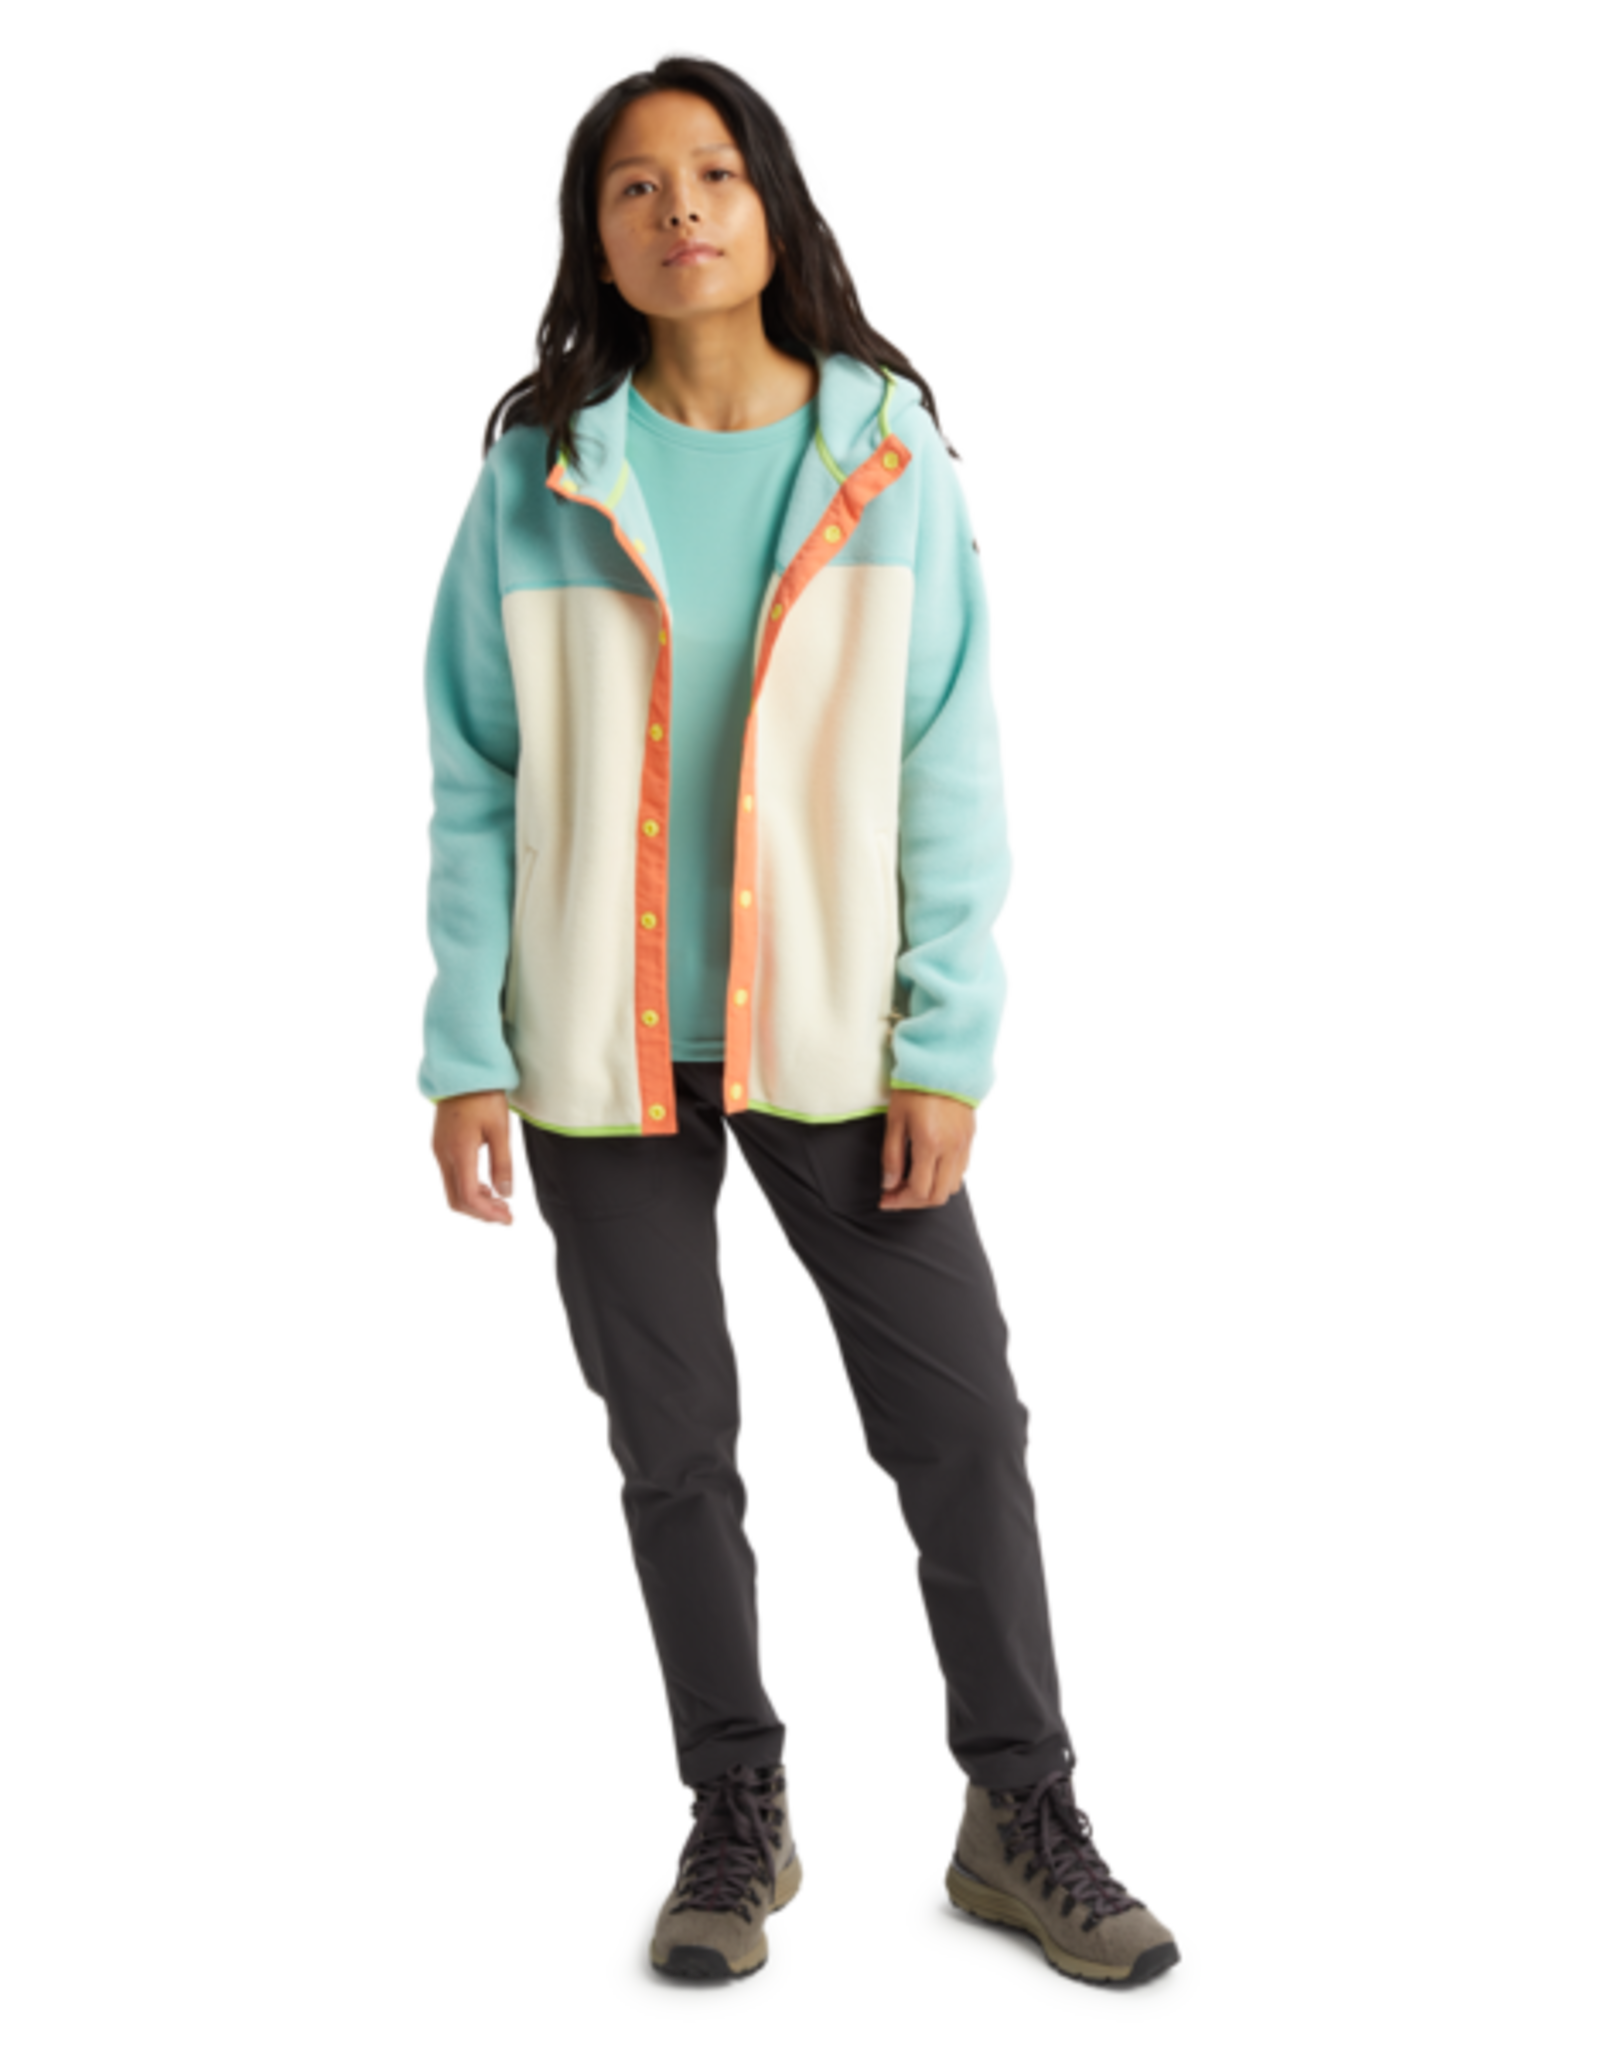 burton Burton - Polar Hearth Full Snap Buoy Blue/Creme Brulée